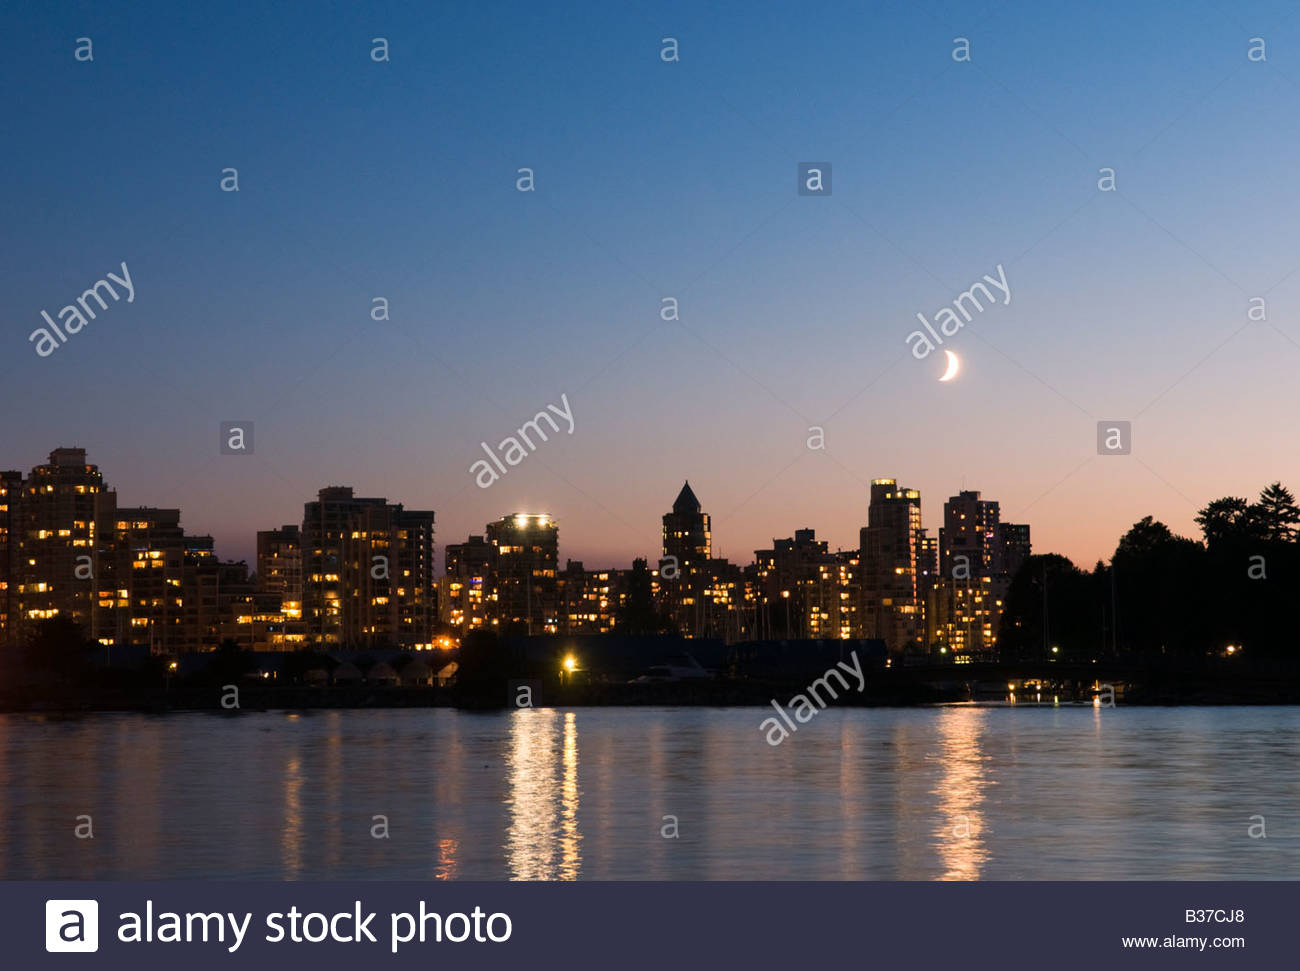 'Evening skyline Coal Harbour Vancouver Canada' - Stock Image